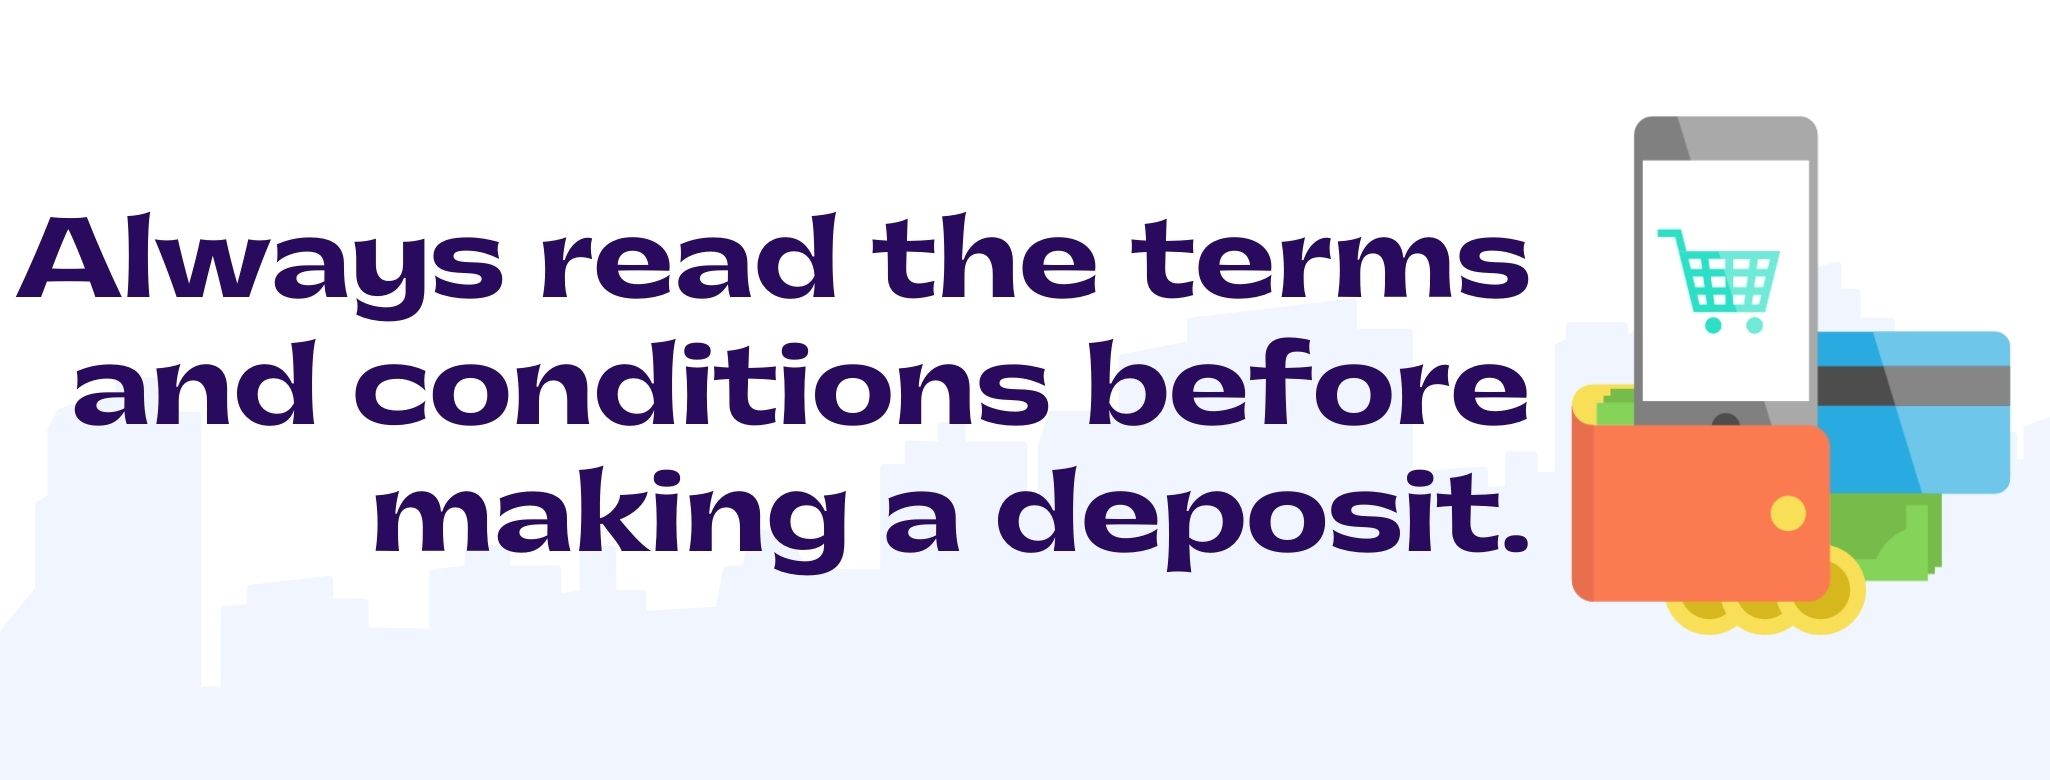 always-read-terms-and-conditions-before-you-deposit